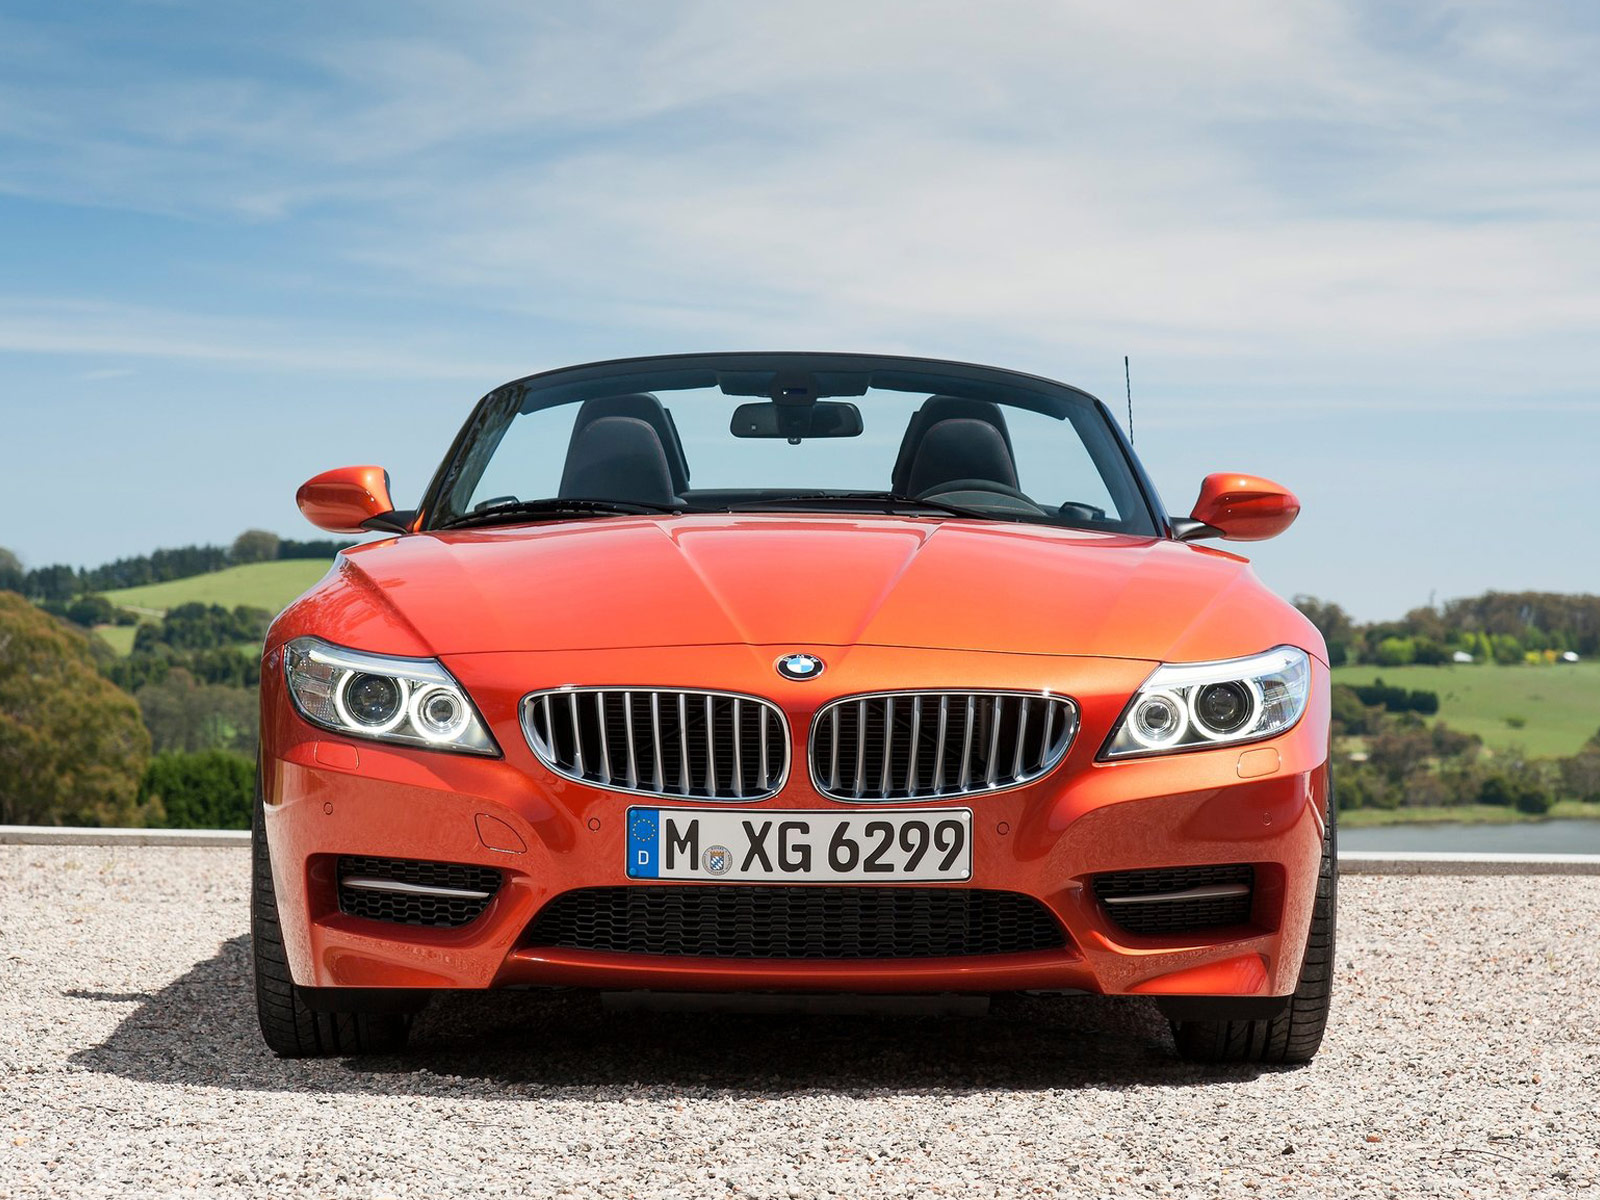 2014 Bmw Z4 Roadster Car Pictures Insurance Information